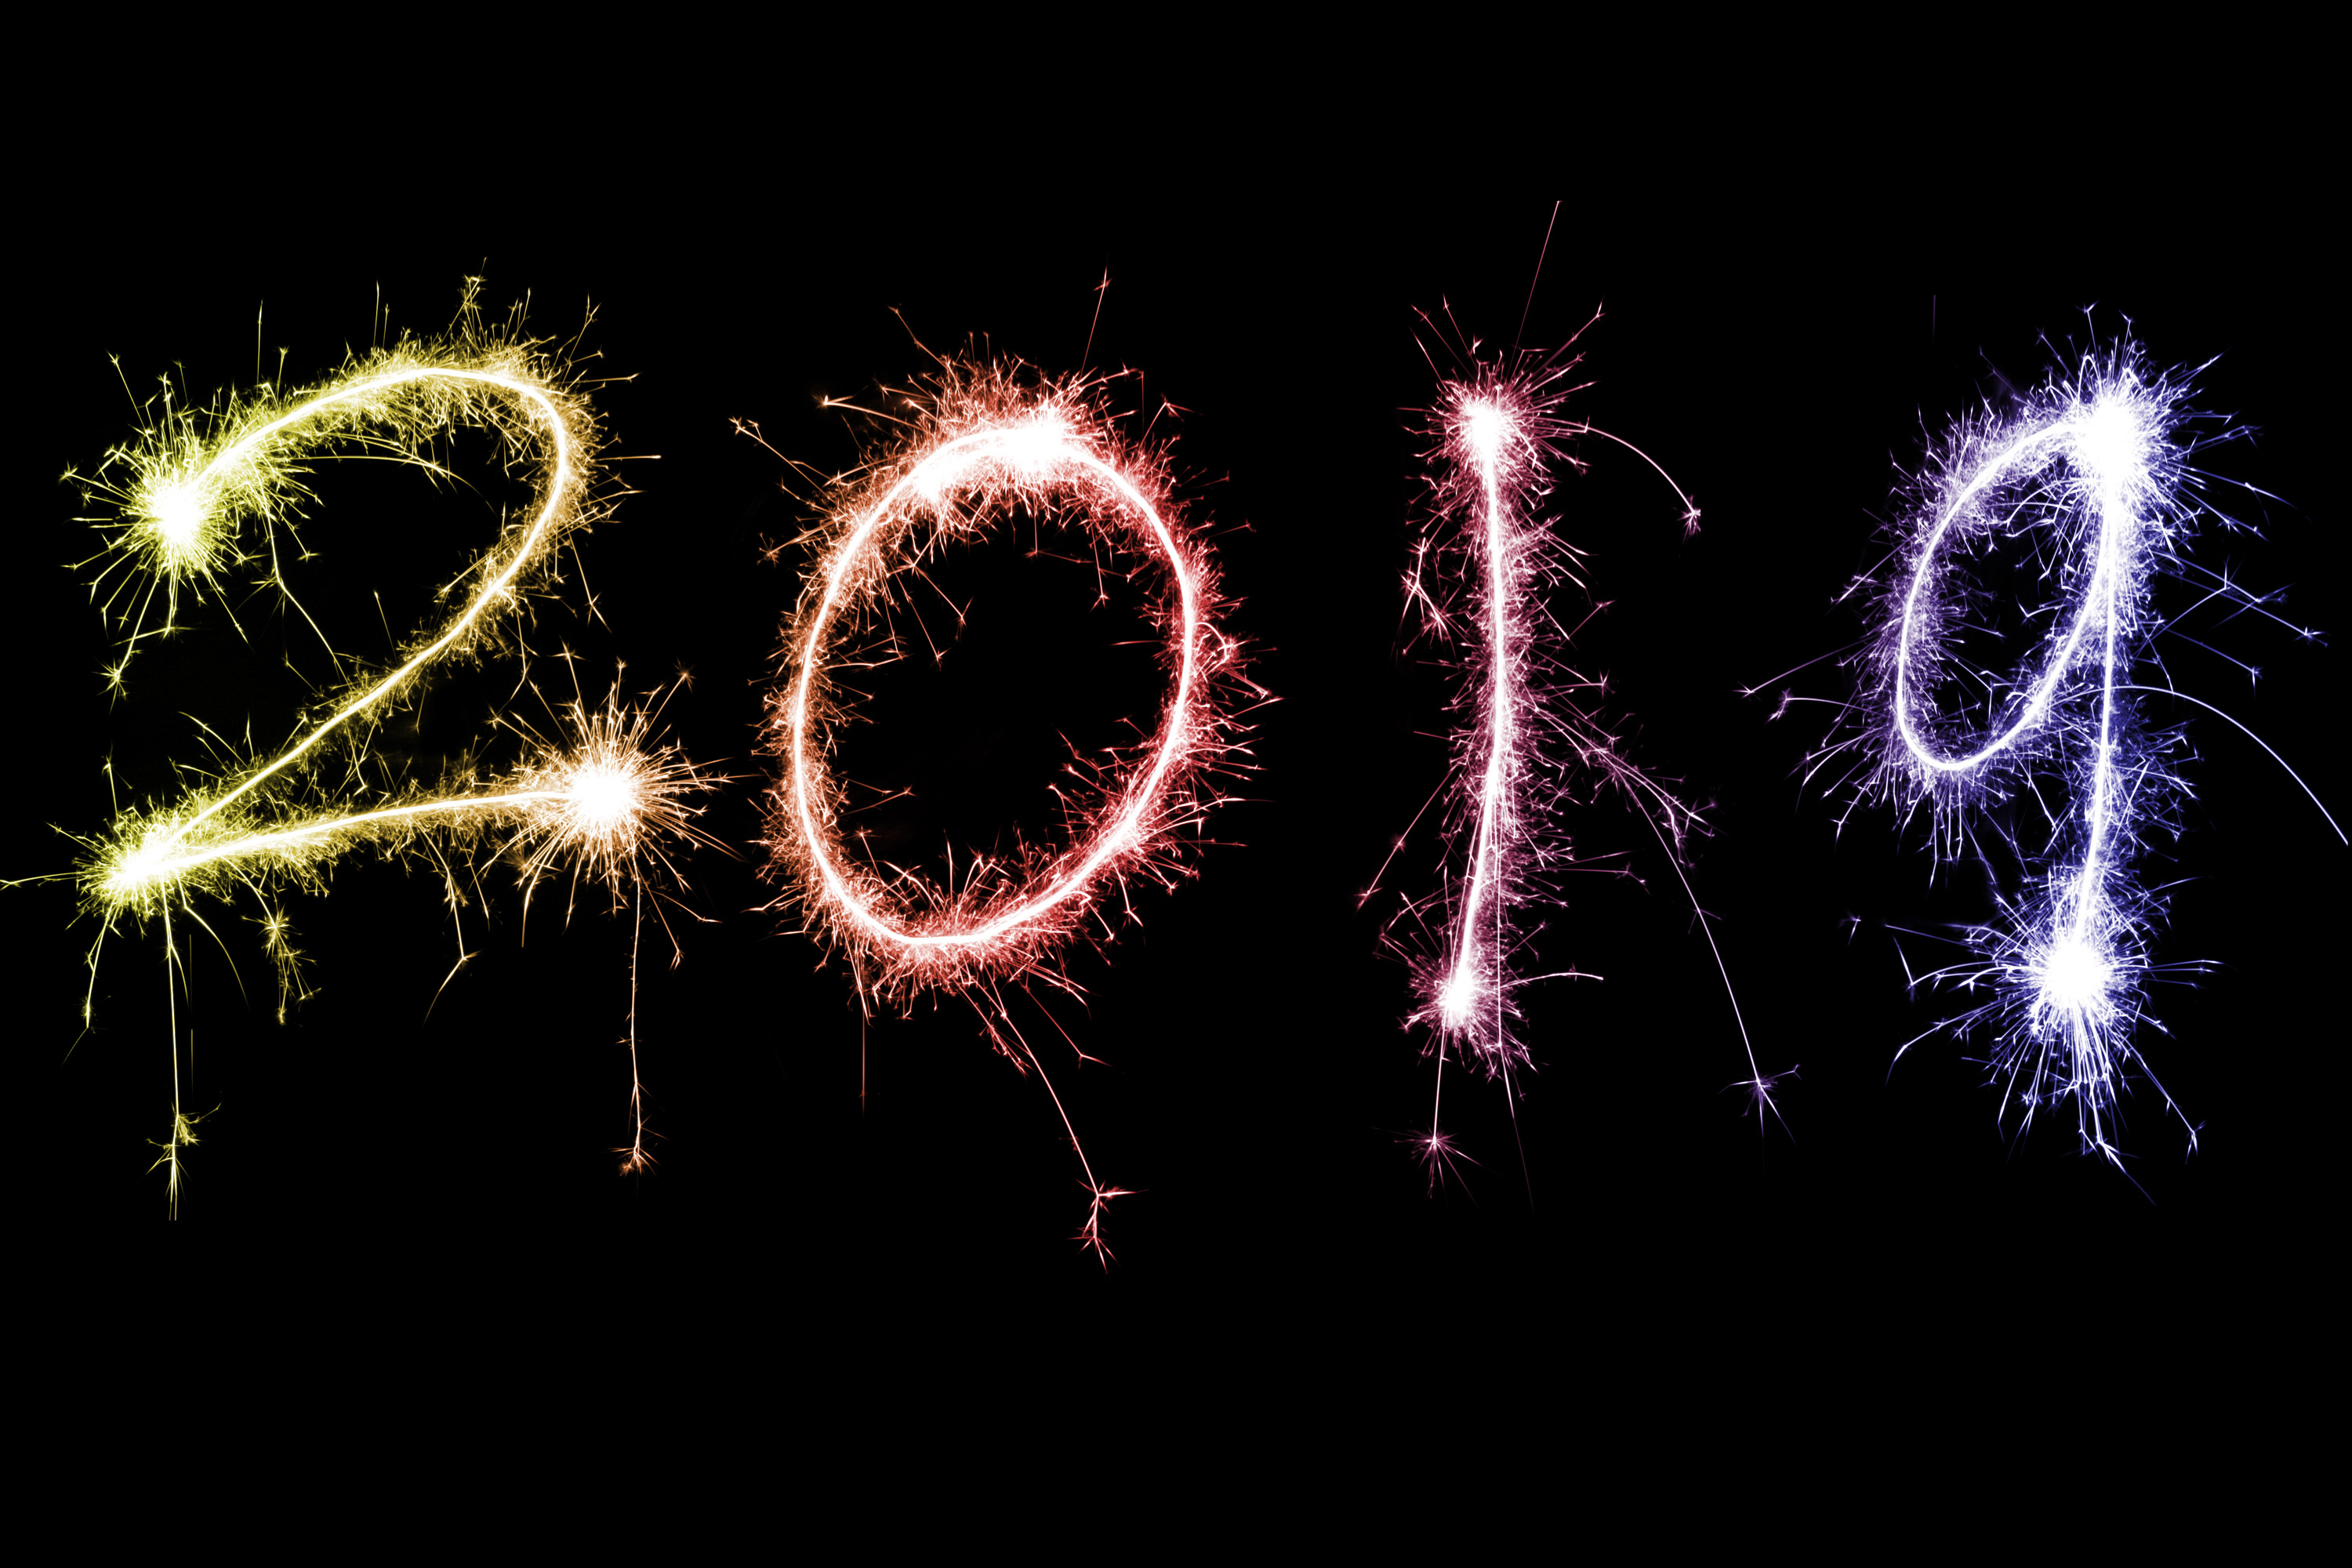 2019 year numbers in sparkling fireworks lights over dark background